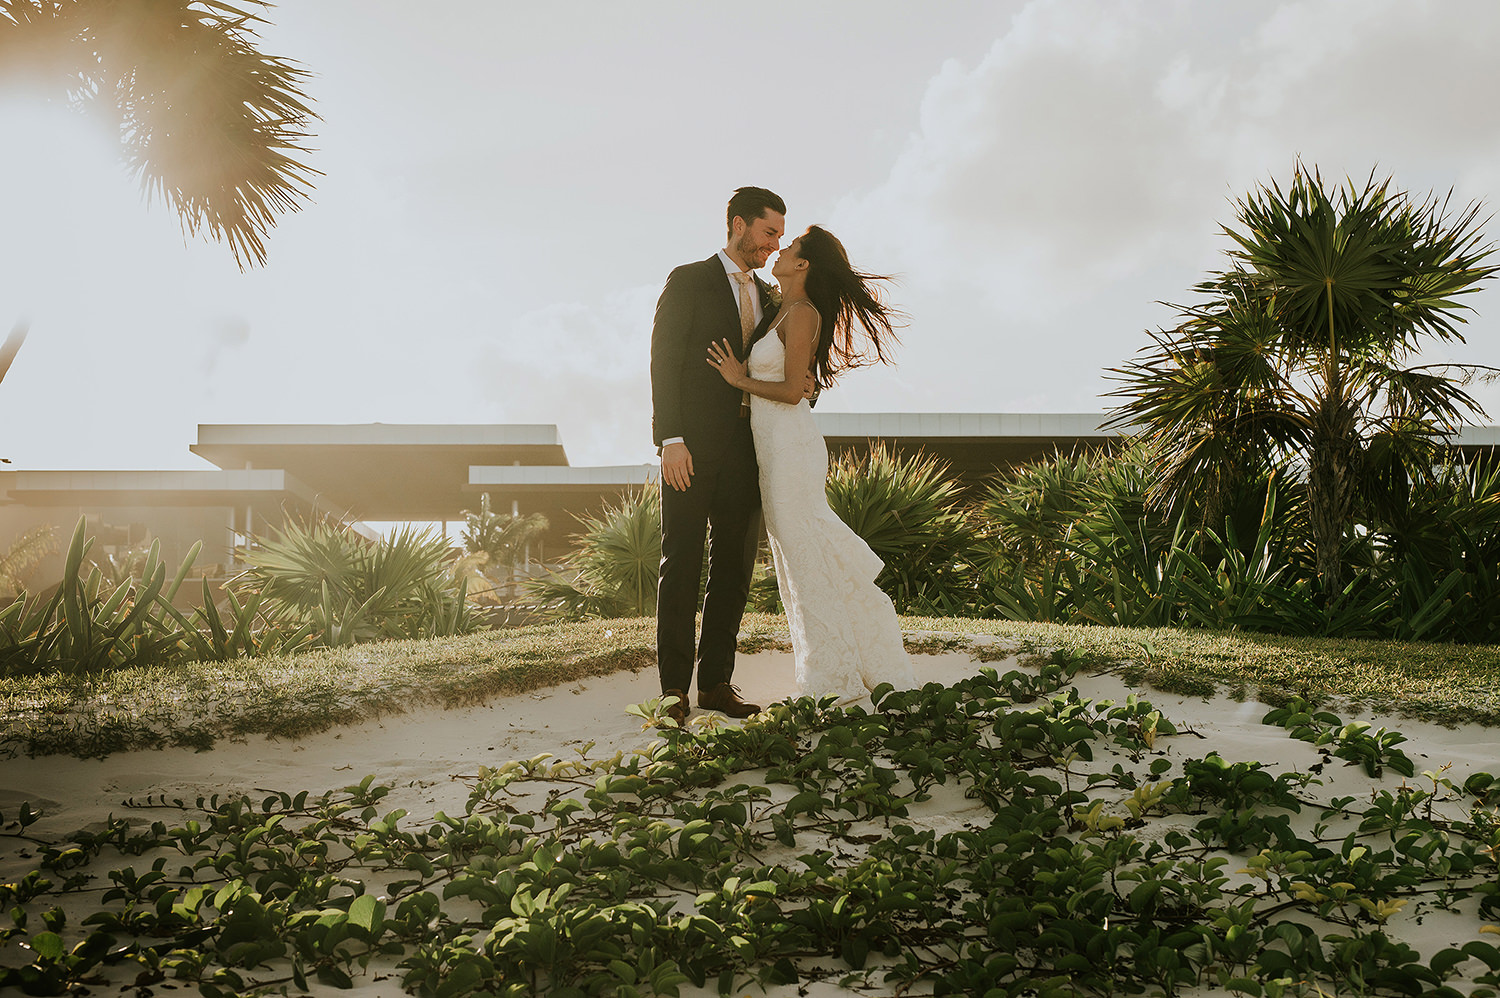 CherylReed_Wedding_Kape_Photography_WeddingPhotography_Mexico_Boda_Fotografia_Royalton_Hideway_Cancun_RivieraMaya_PlayadelCarmen_Beach_971FB_BLOG.jpg